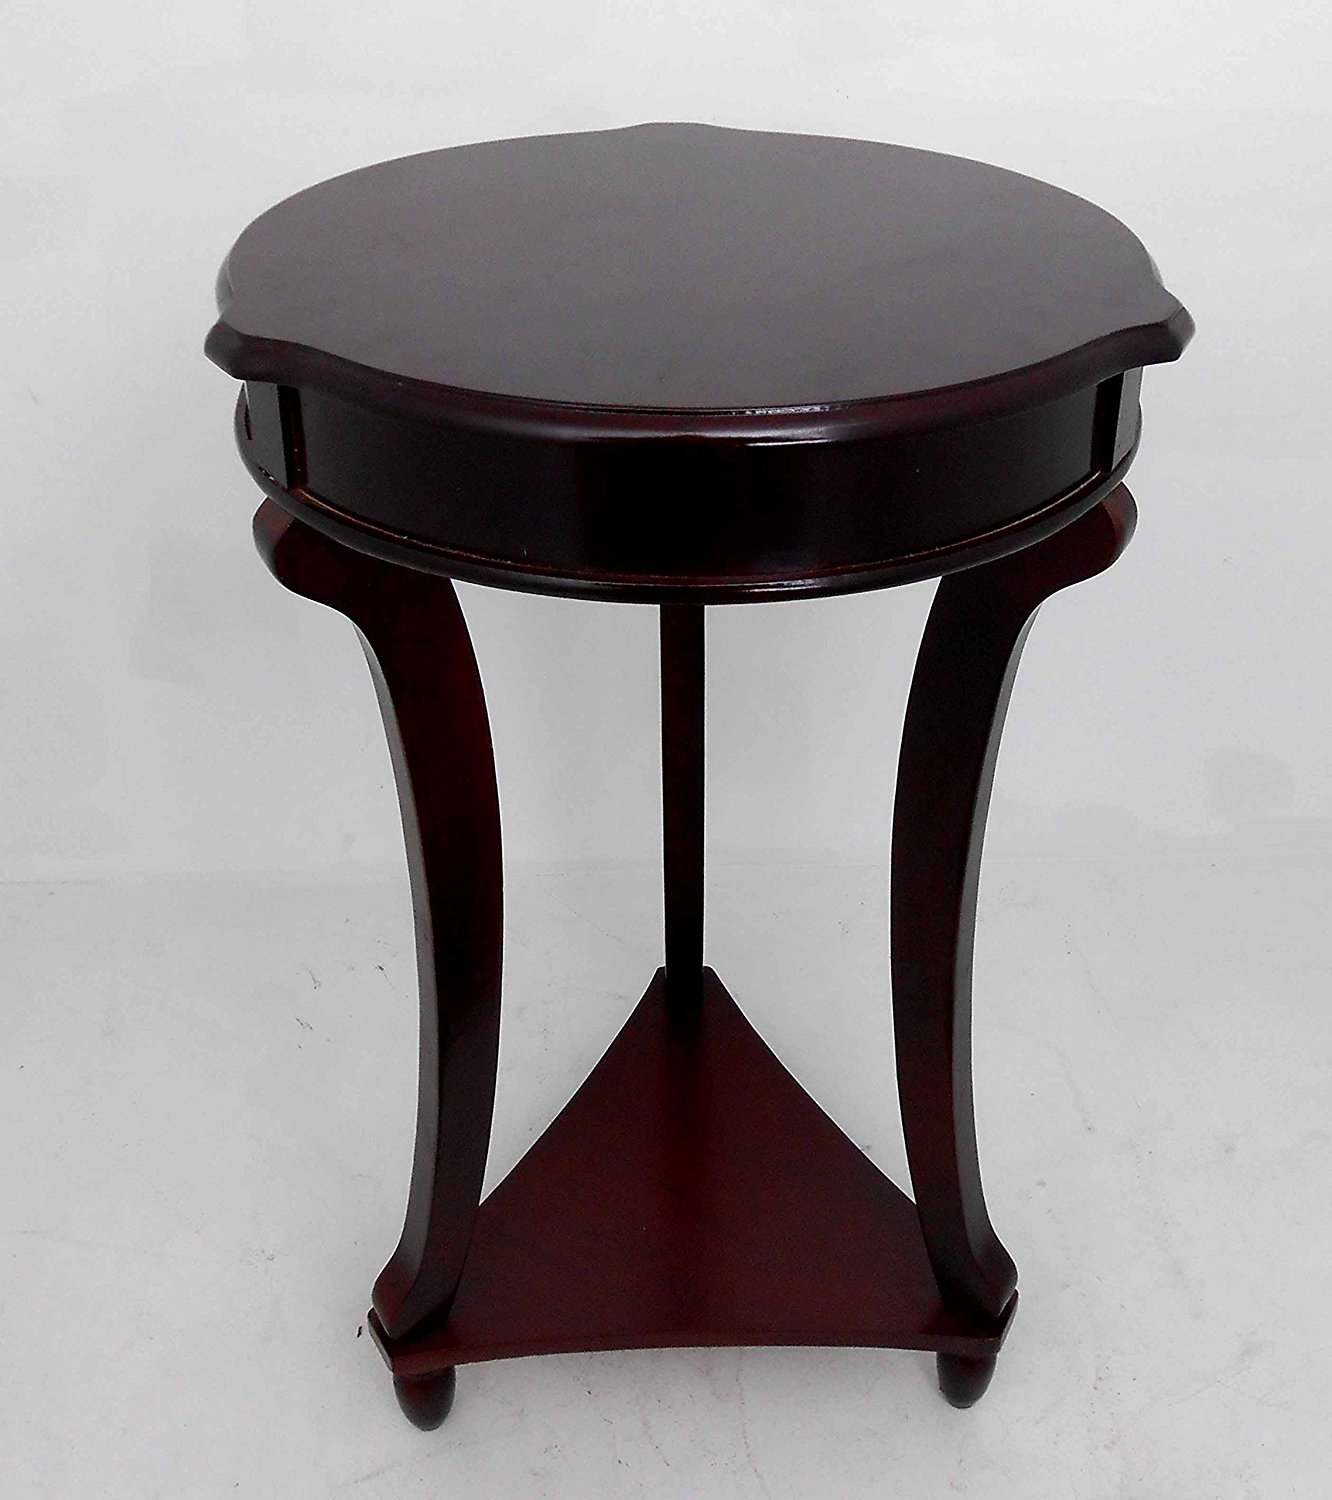 Get Quotations Nf Brown Round Accent Tables End Telephone Plant Table Home Decorative